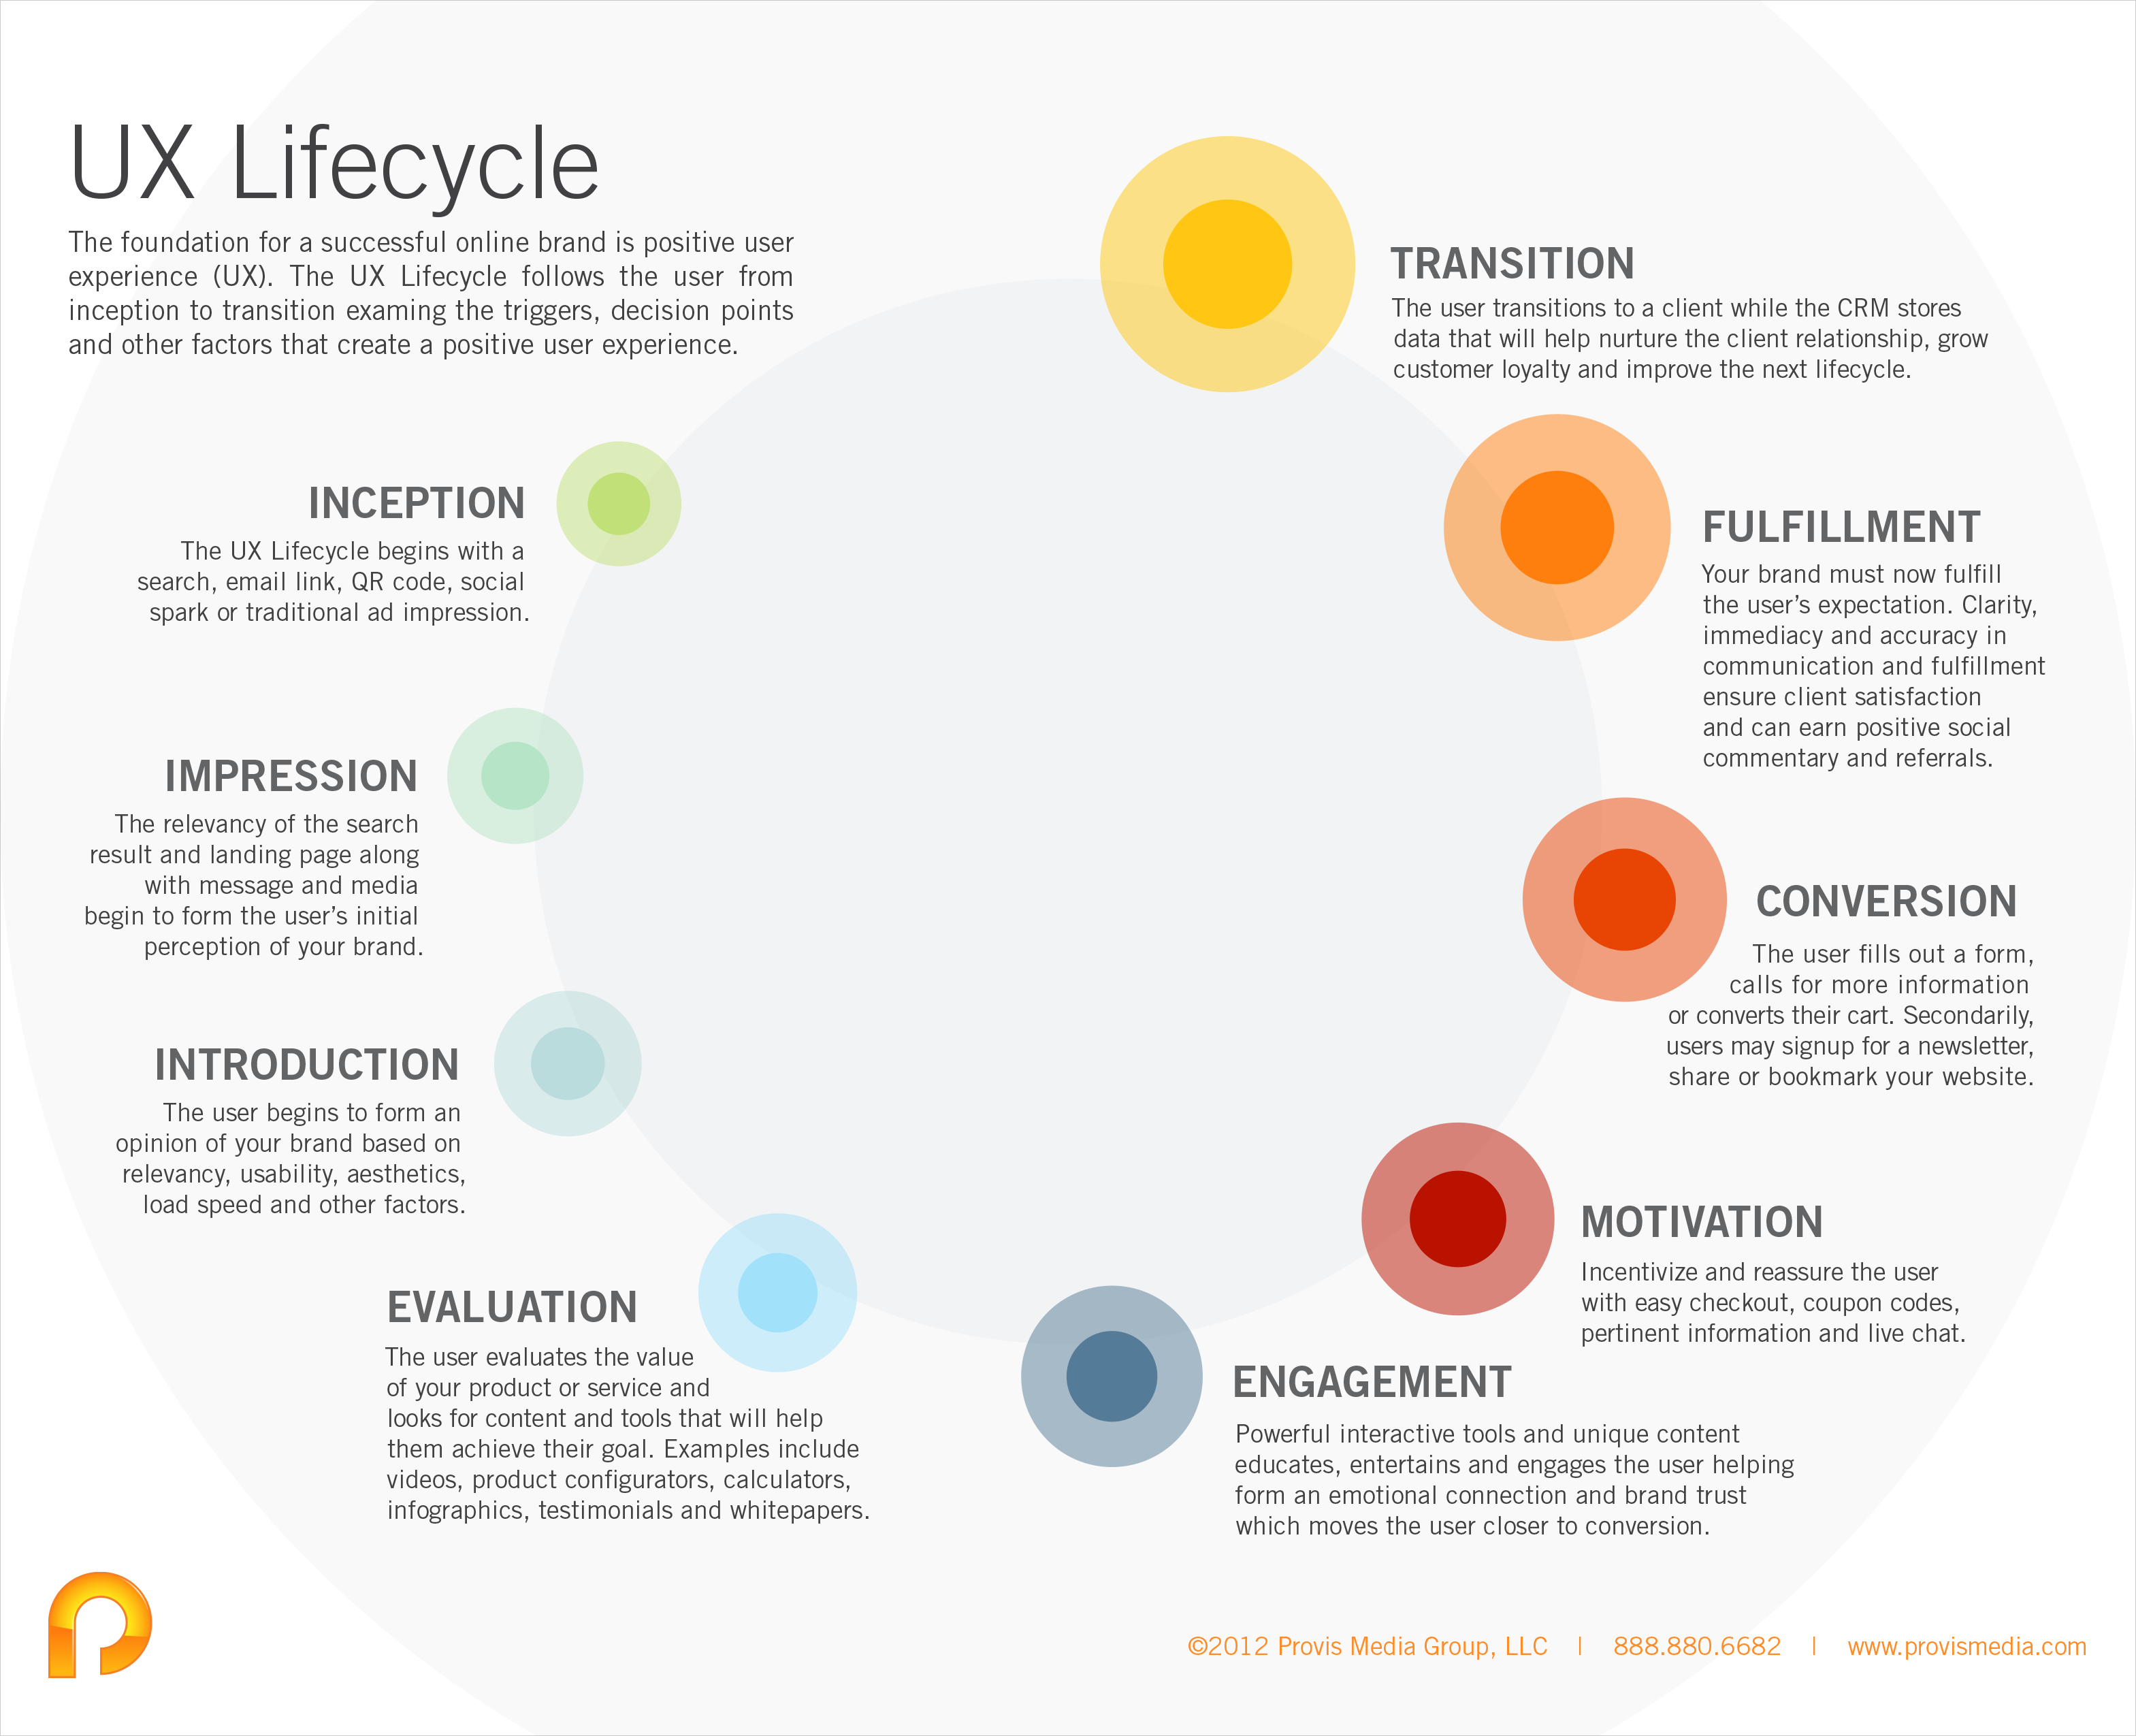 User experience lifecycle 10 of the best ux infographics news infographic fandeluxe Choice Image